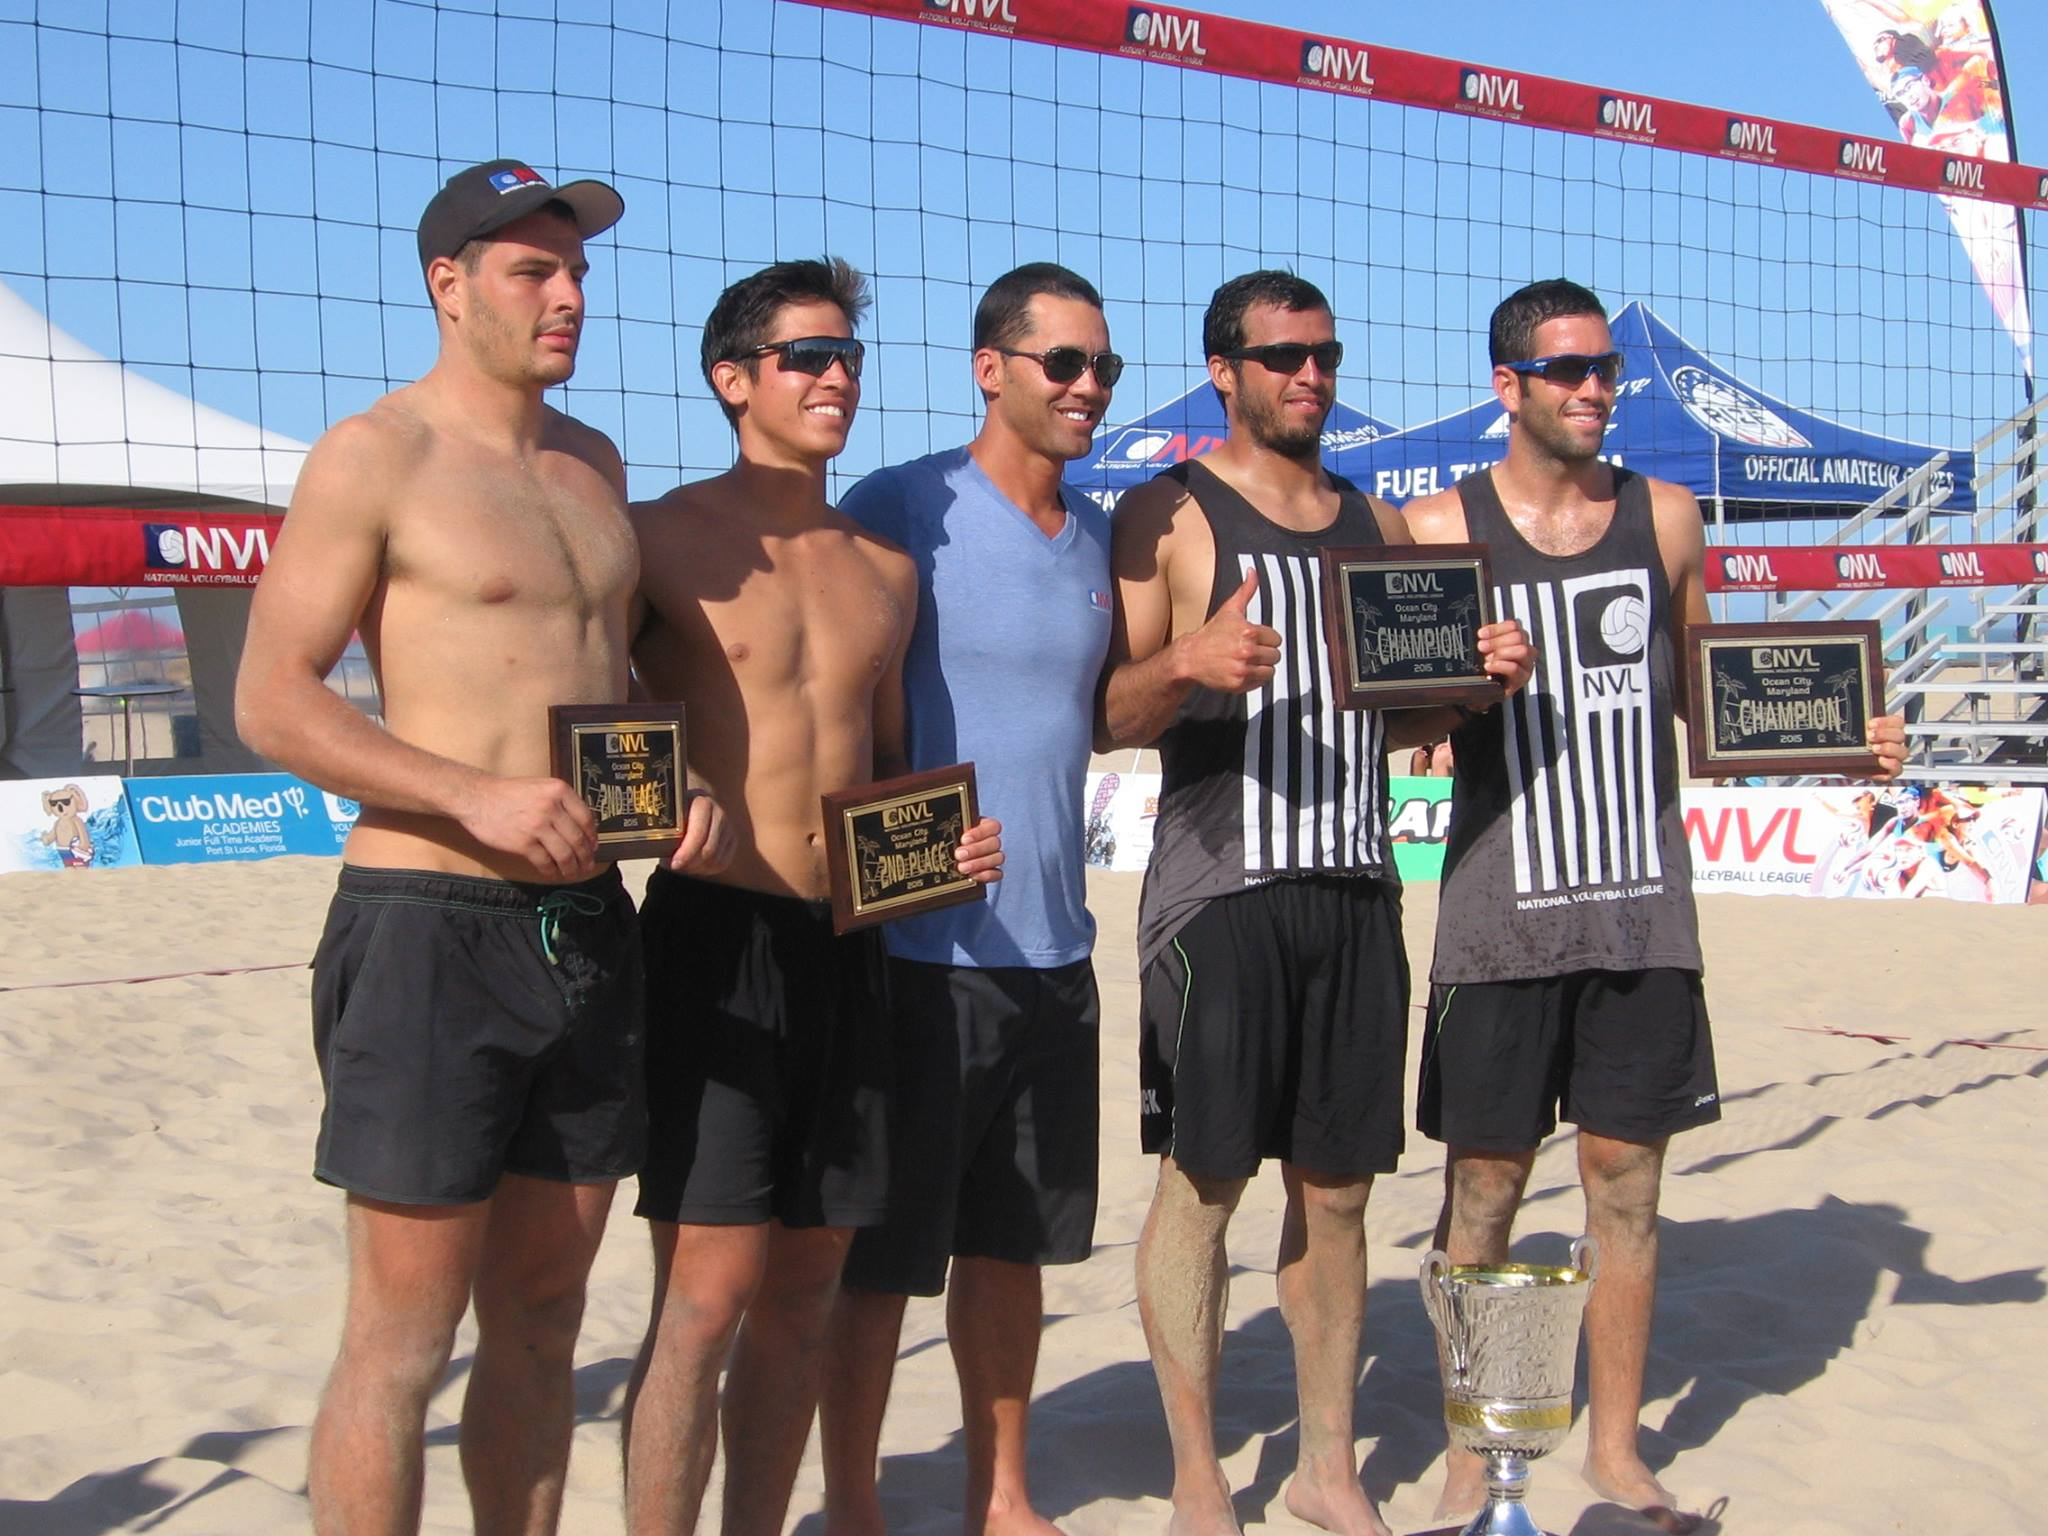 Ocean City, MD – Men's Matches Video